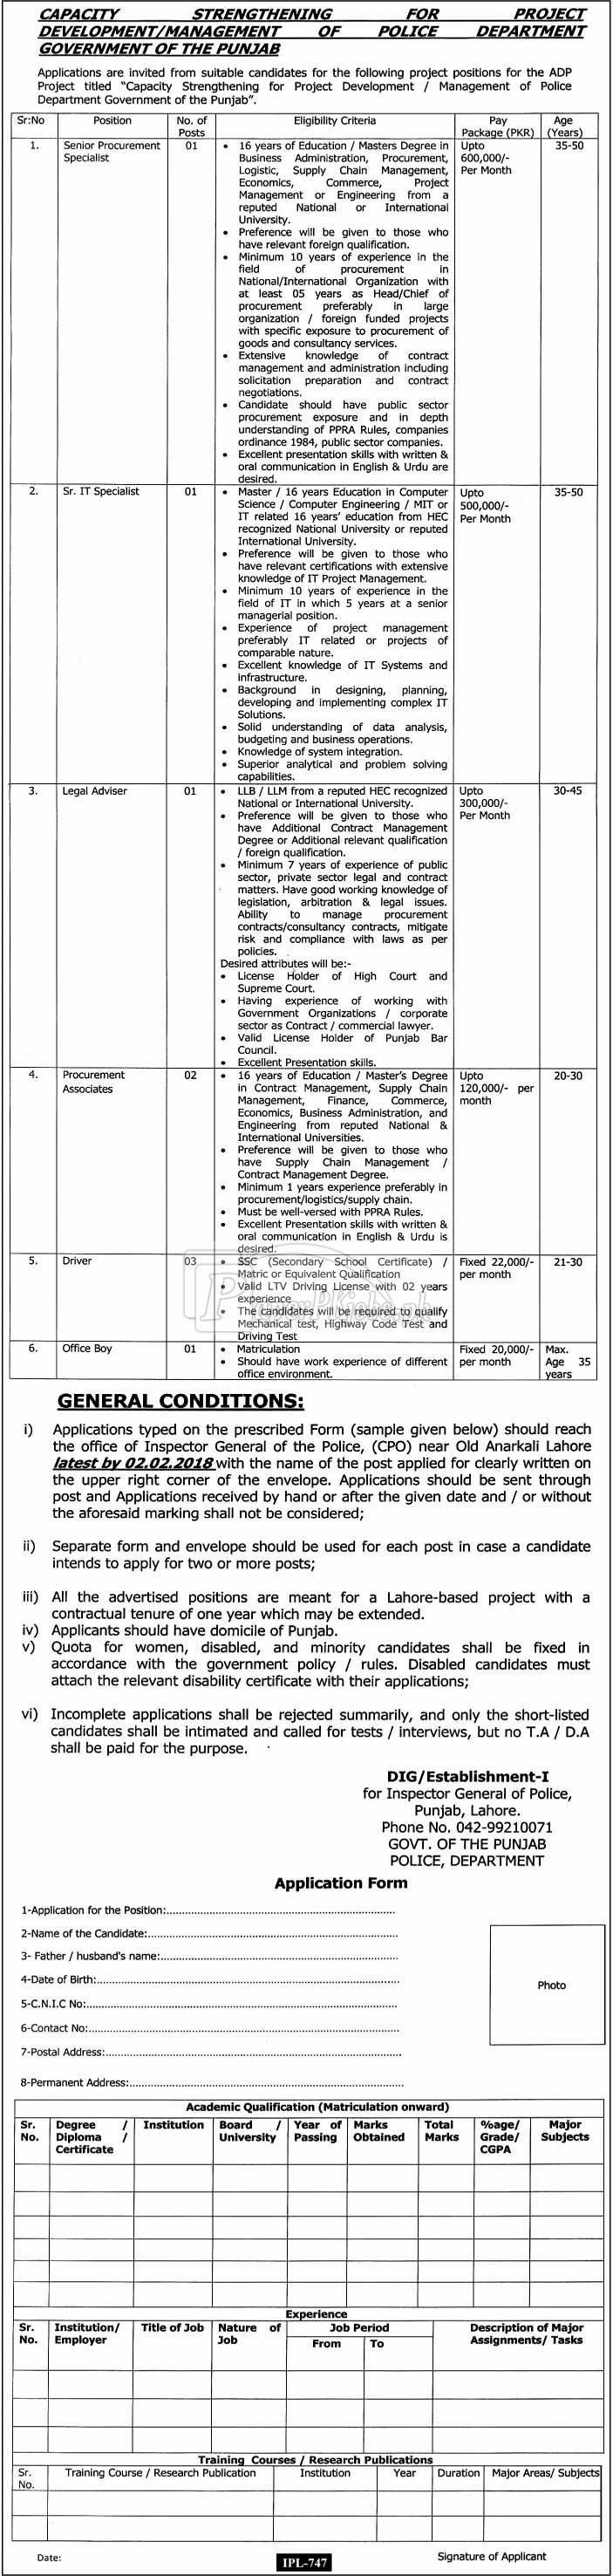 Police Department Government of Punjab Jobs 2018